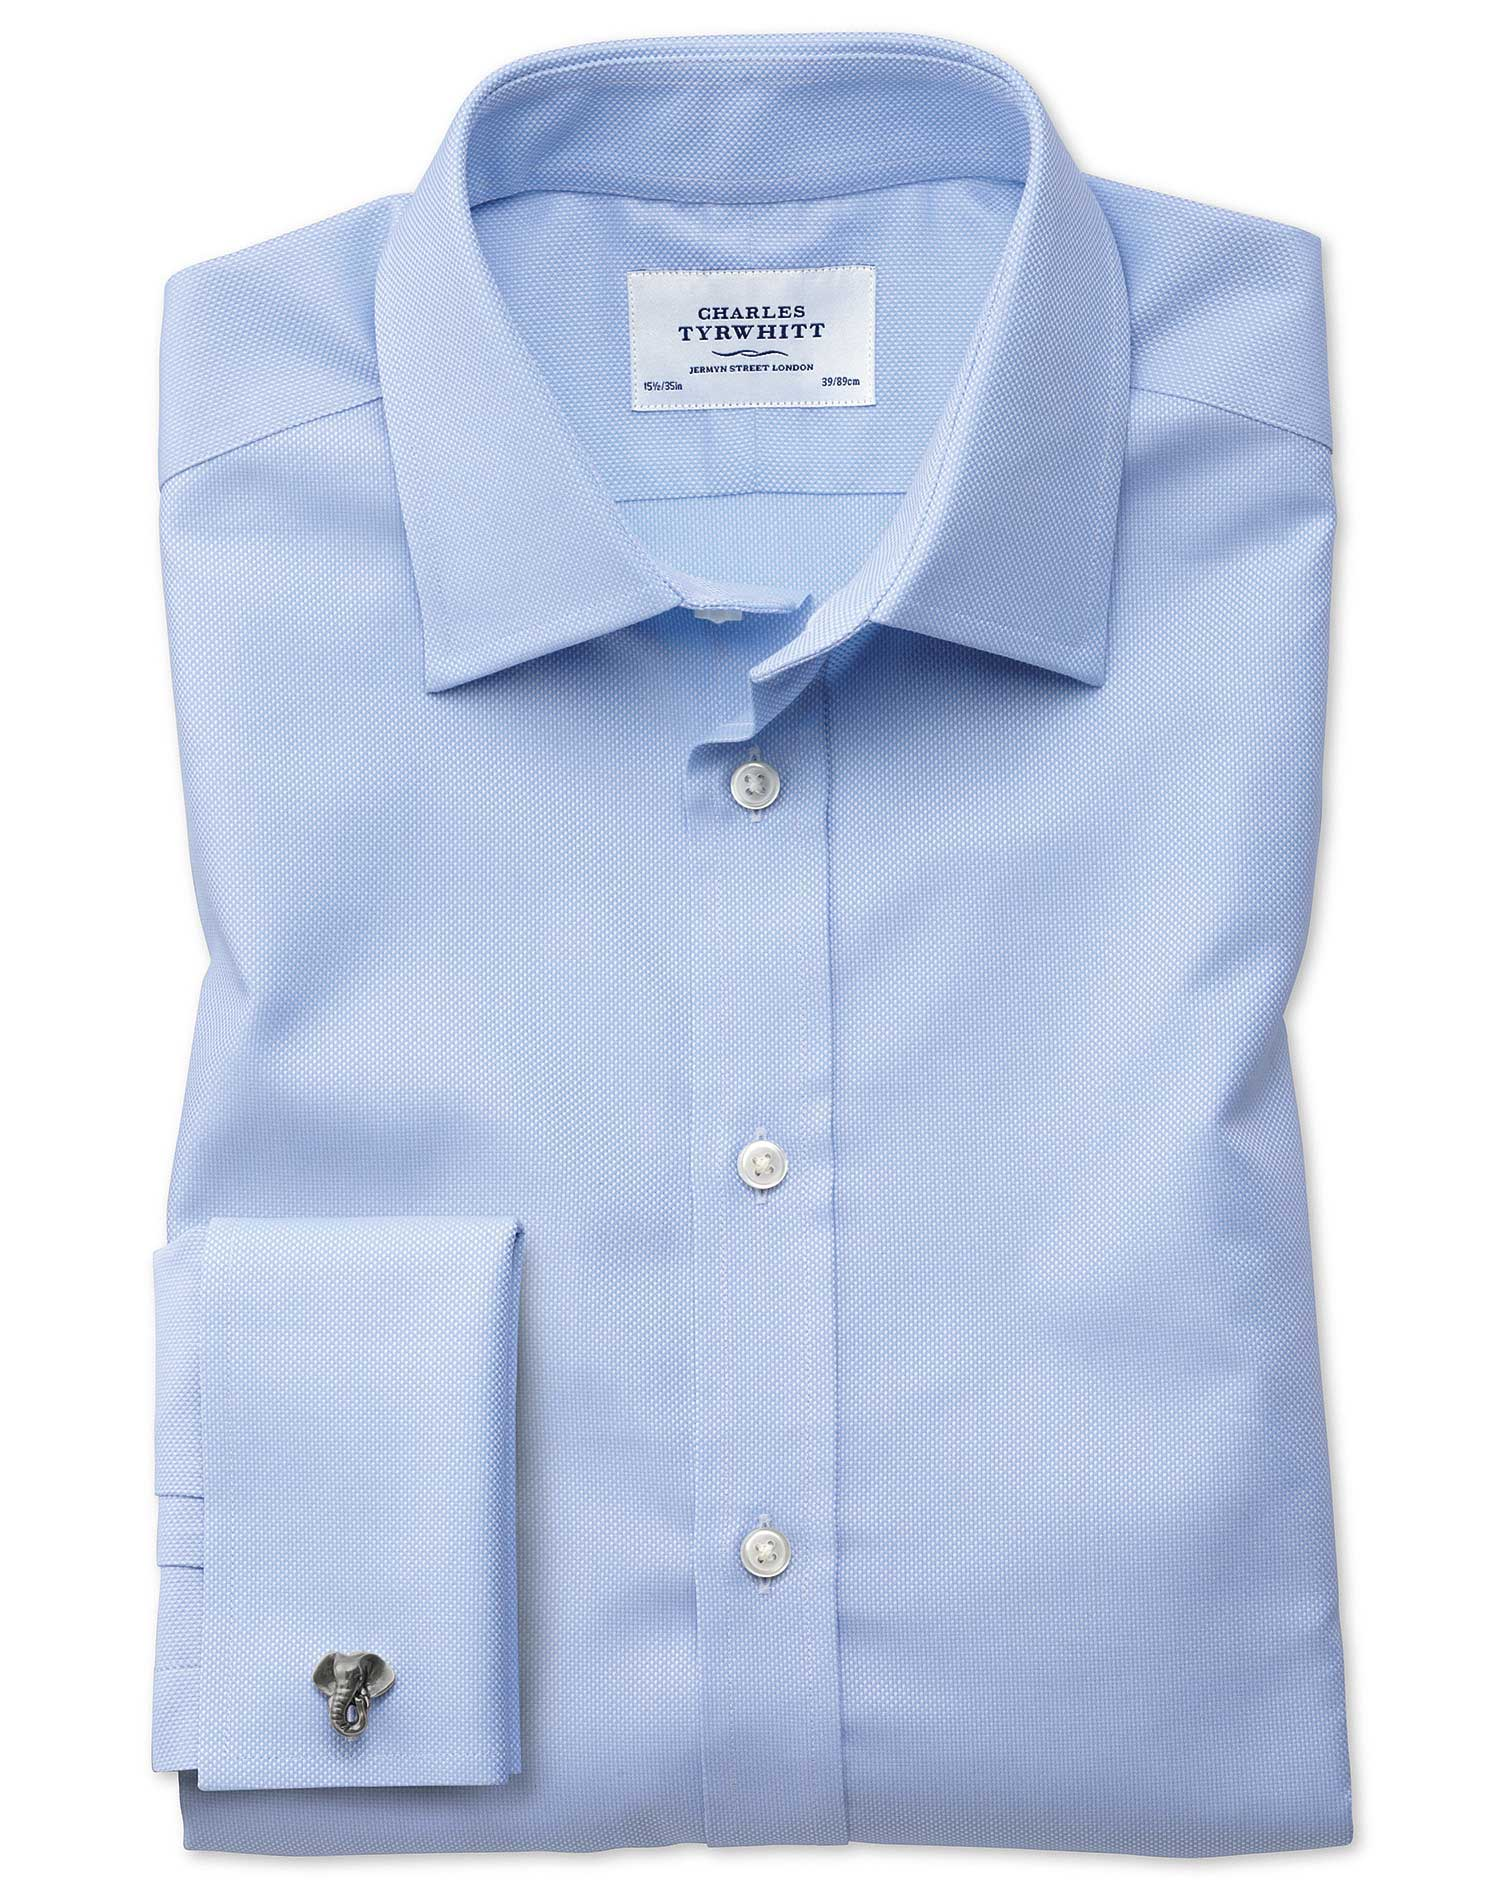 Classic Fit Egyptian Cotton Royal Oxford Sky Blue Formal Shirt Double Cuff Size 17.5/34 by Charles T